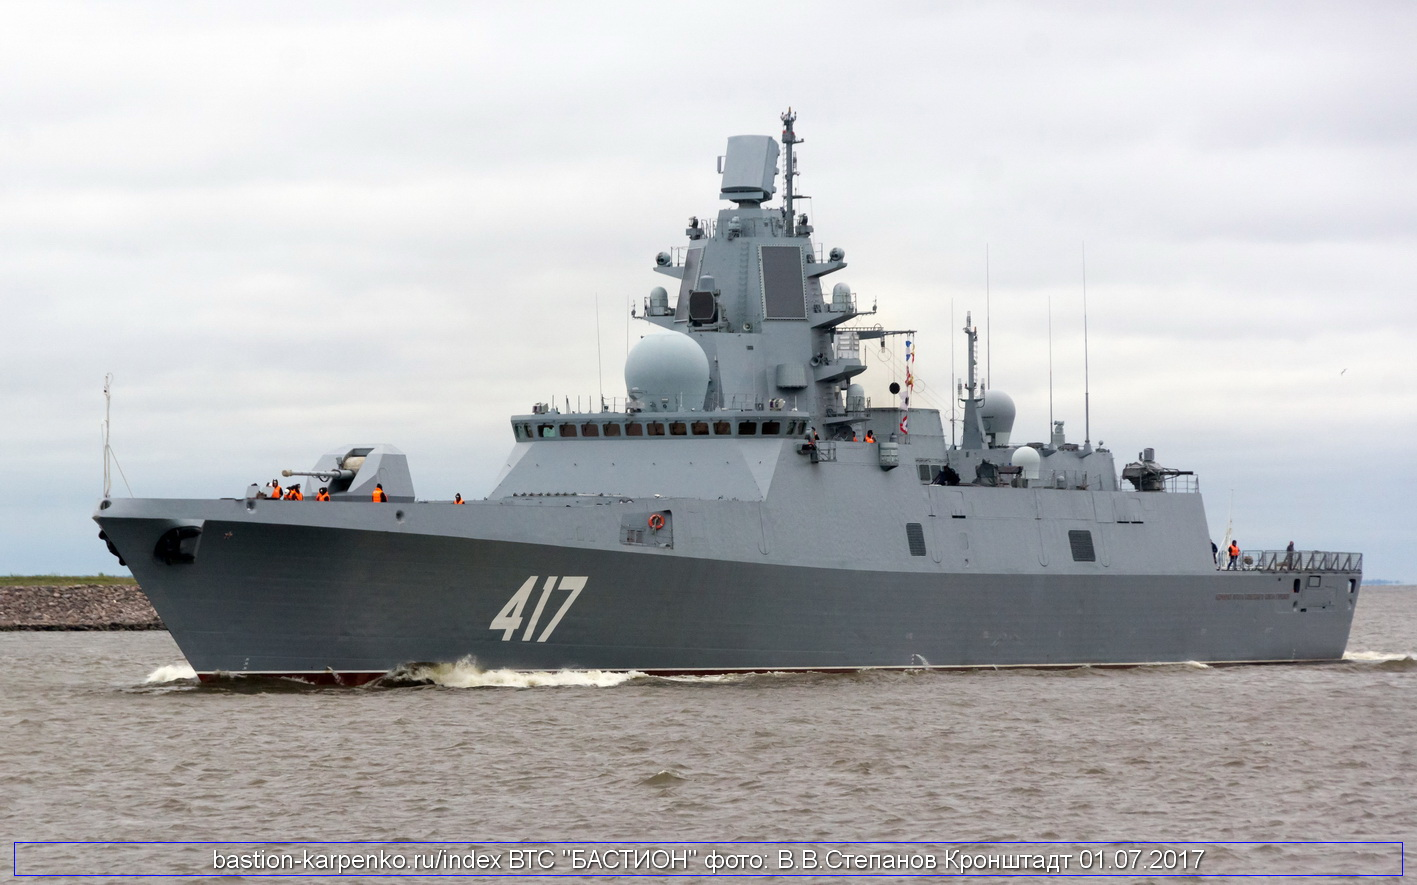 Frigate Admiral Kasatonov: on the design and capabilities of the vessel 84